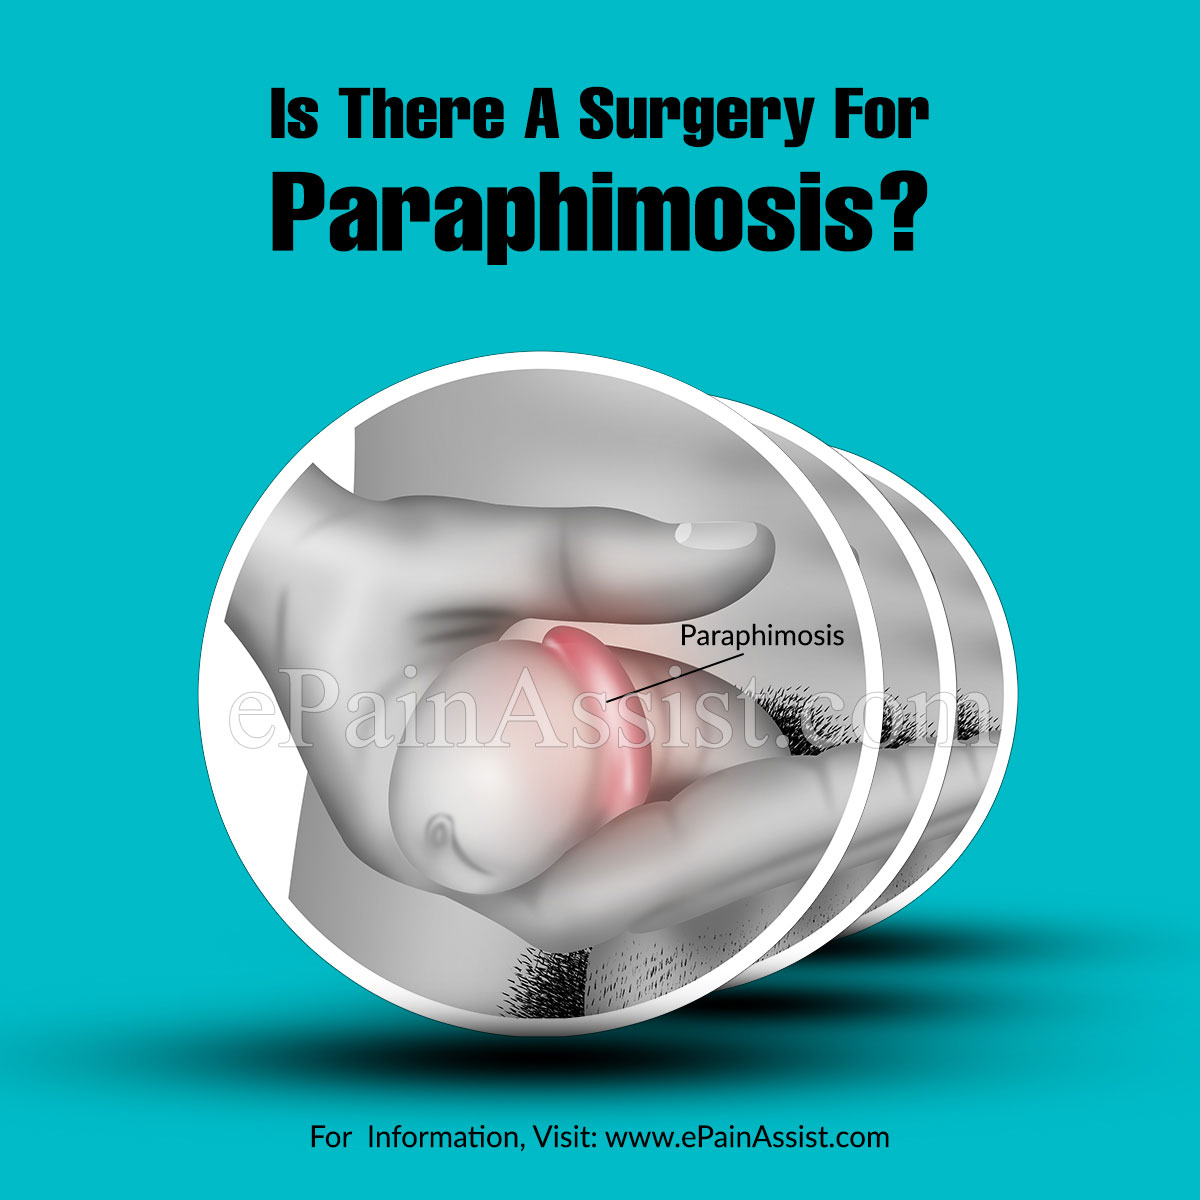 Is There A Surgery For Paraphimosis?